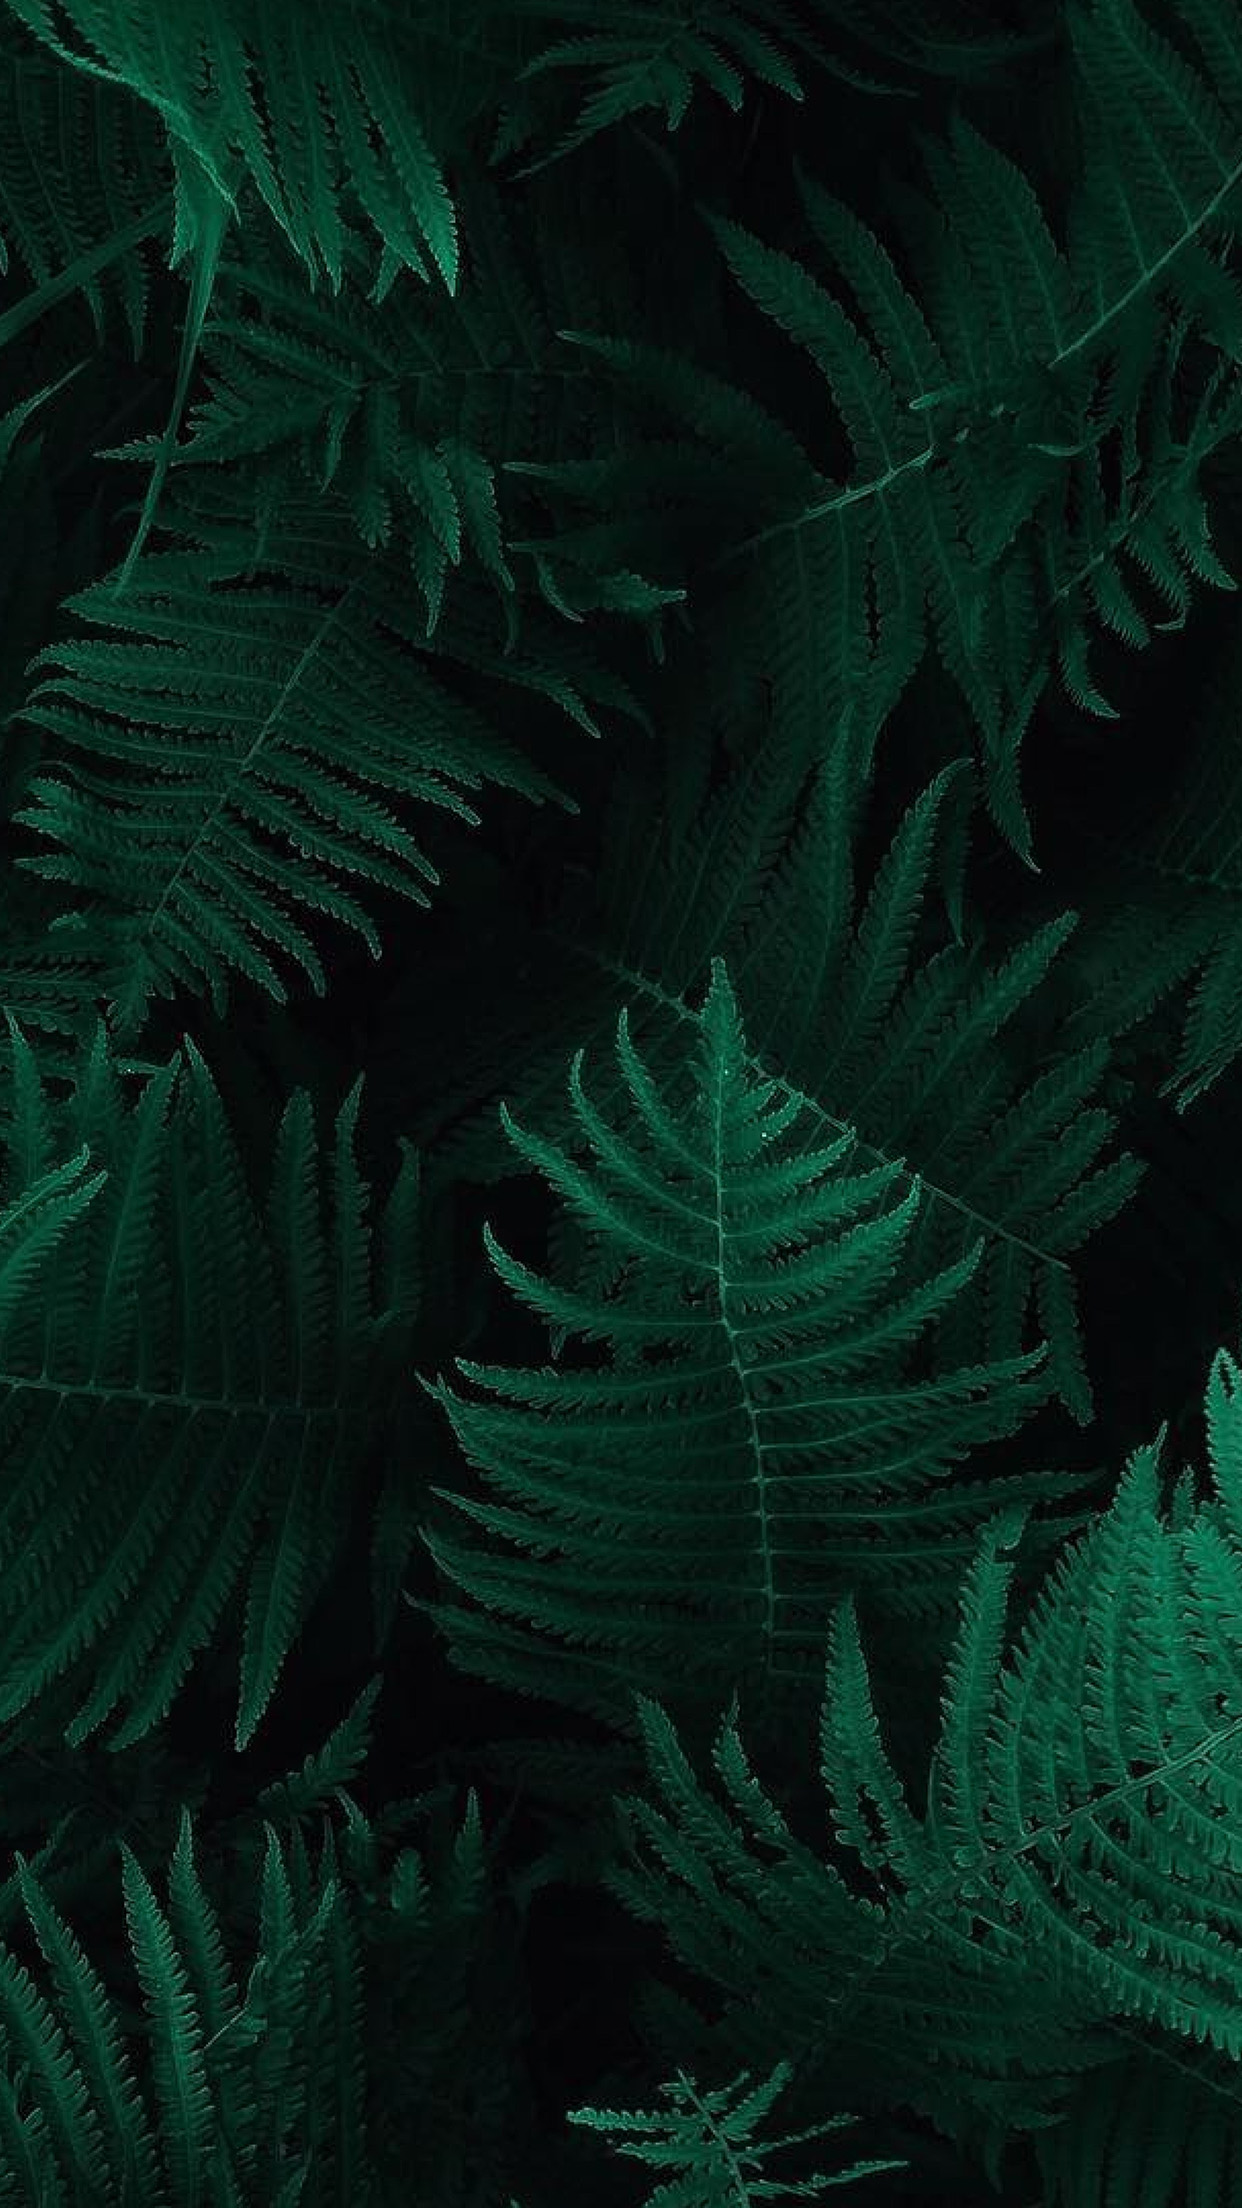 Iphone6papers Com Iphone 6 Wallpaper Ob55 Green Leaf